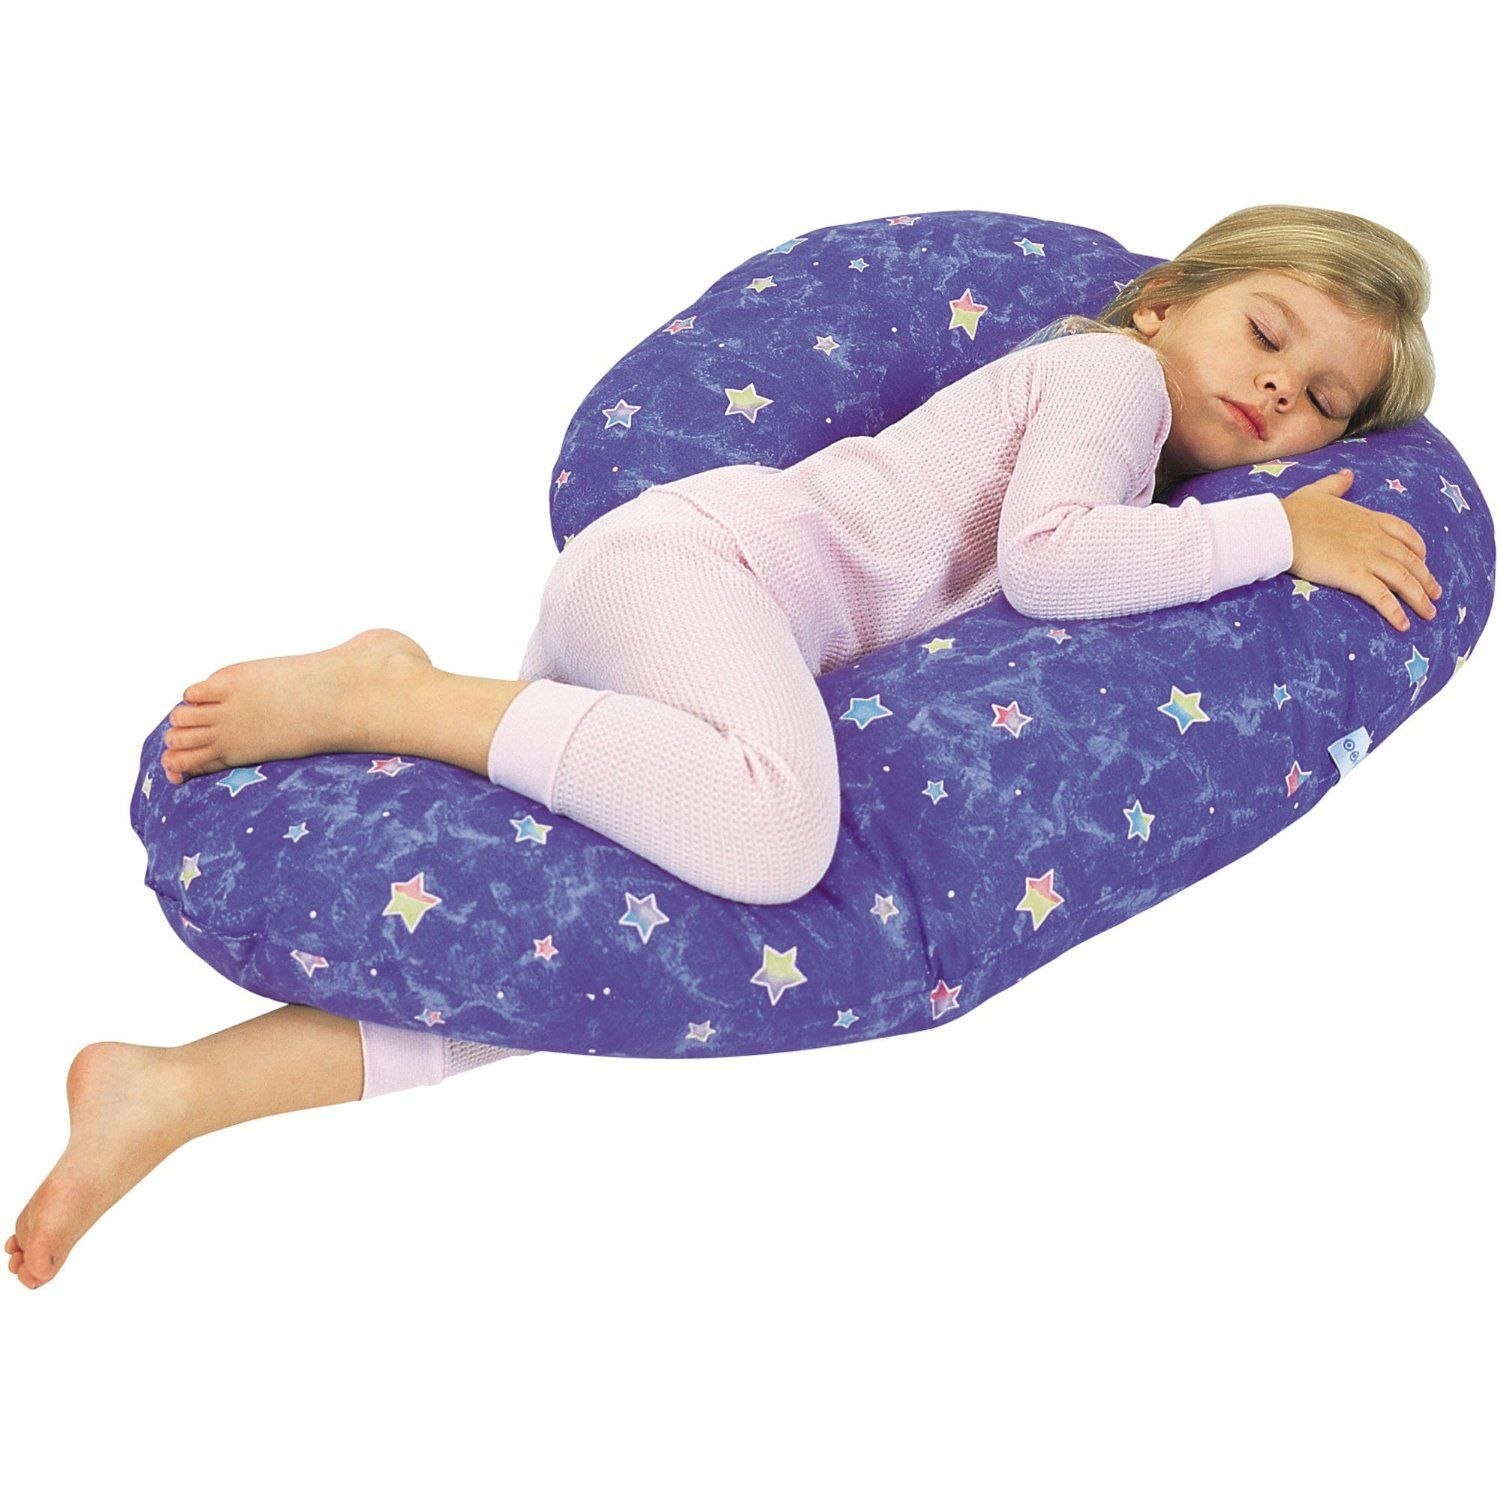 Pillow Chair For Kids - Lil snoogle child size body pillow by leachco